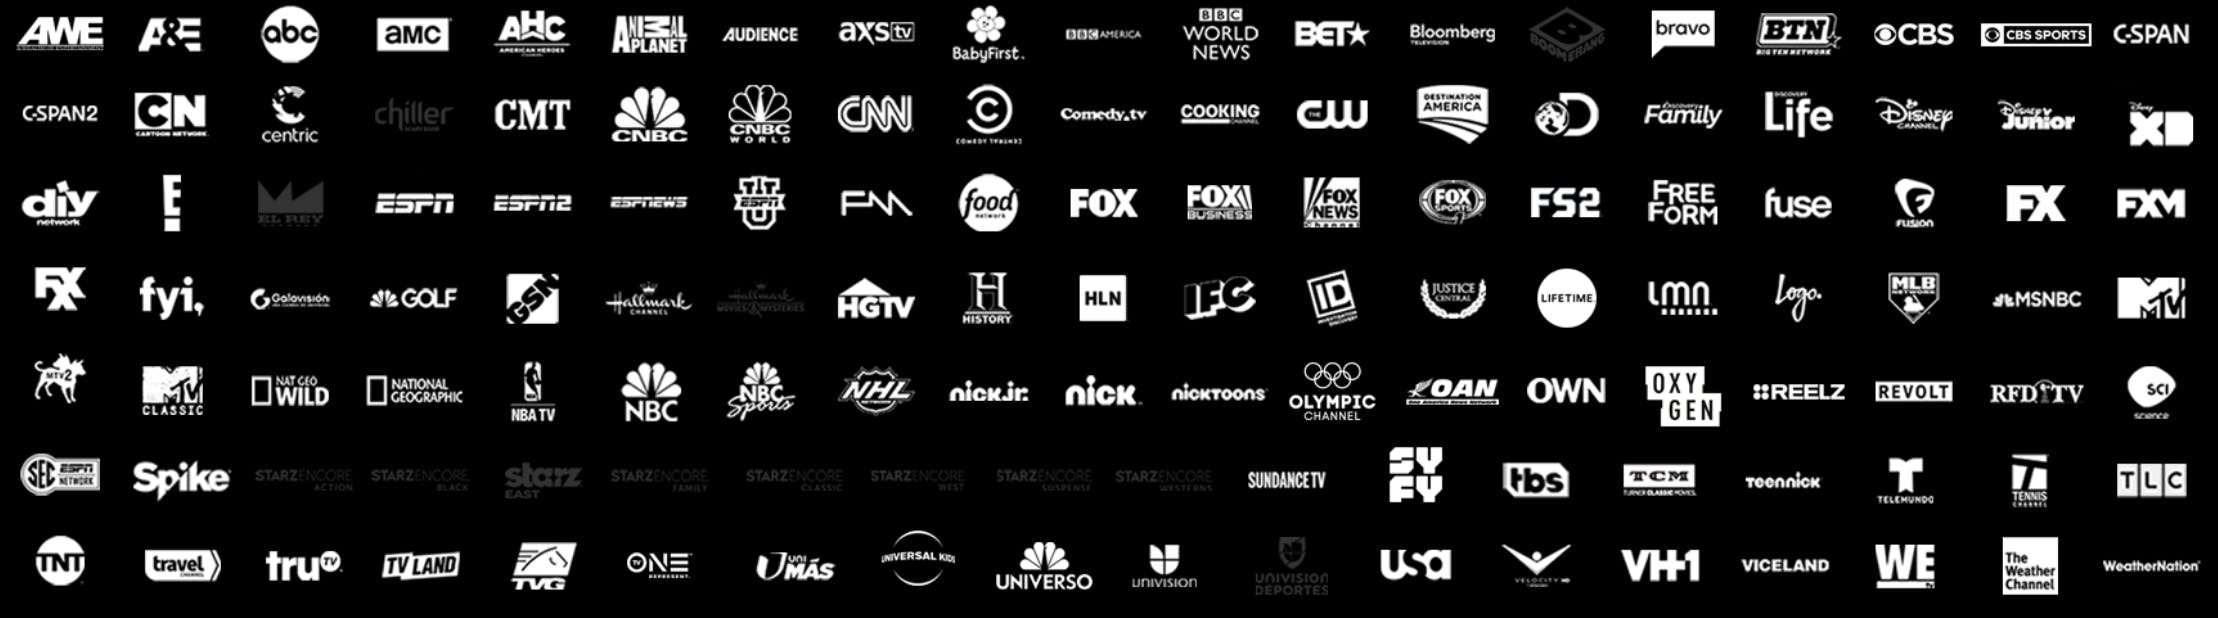 directv now channels go big package